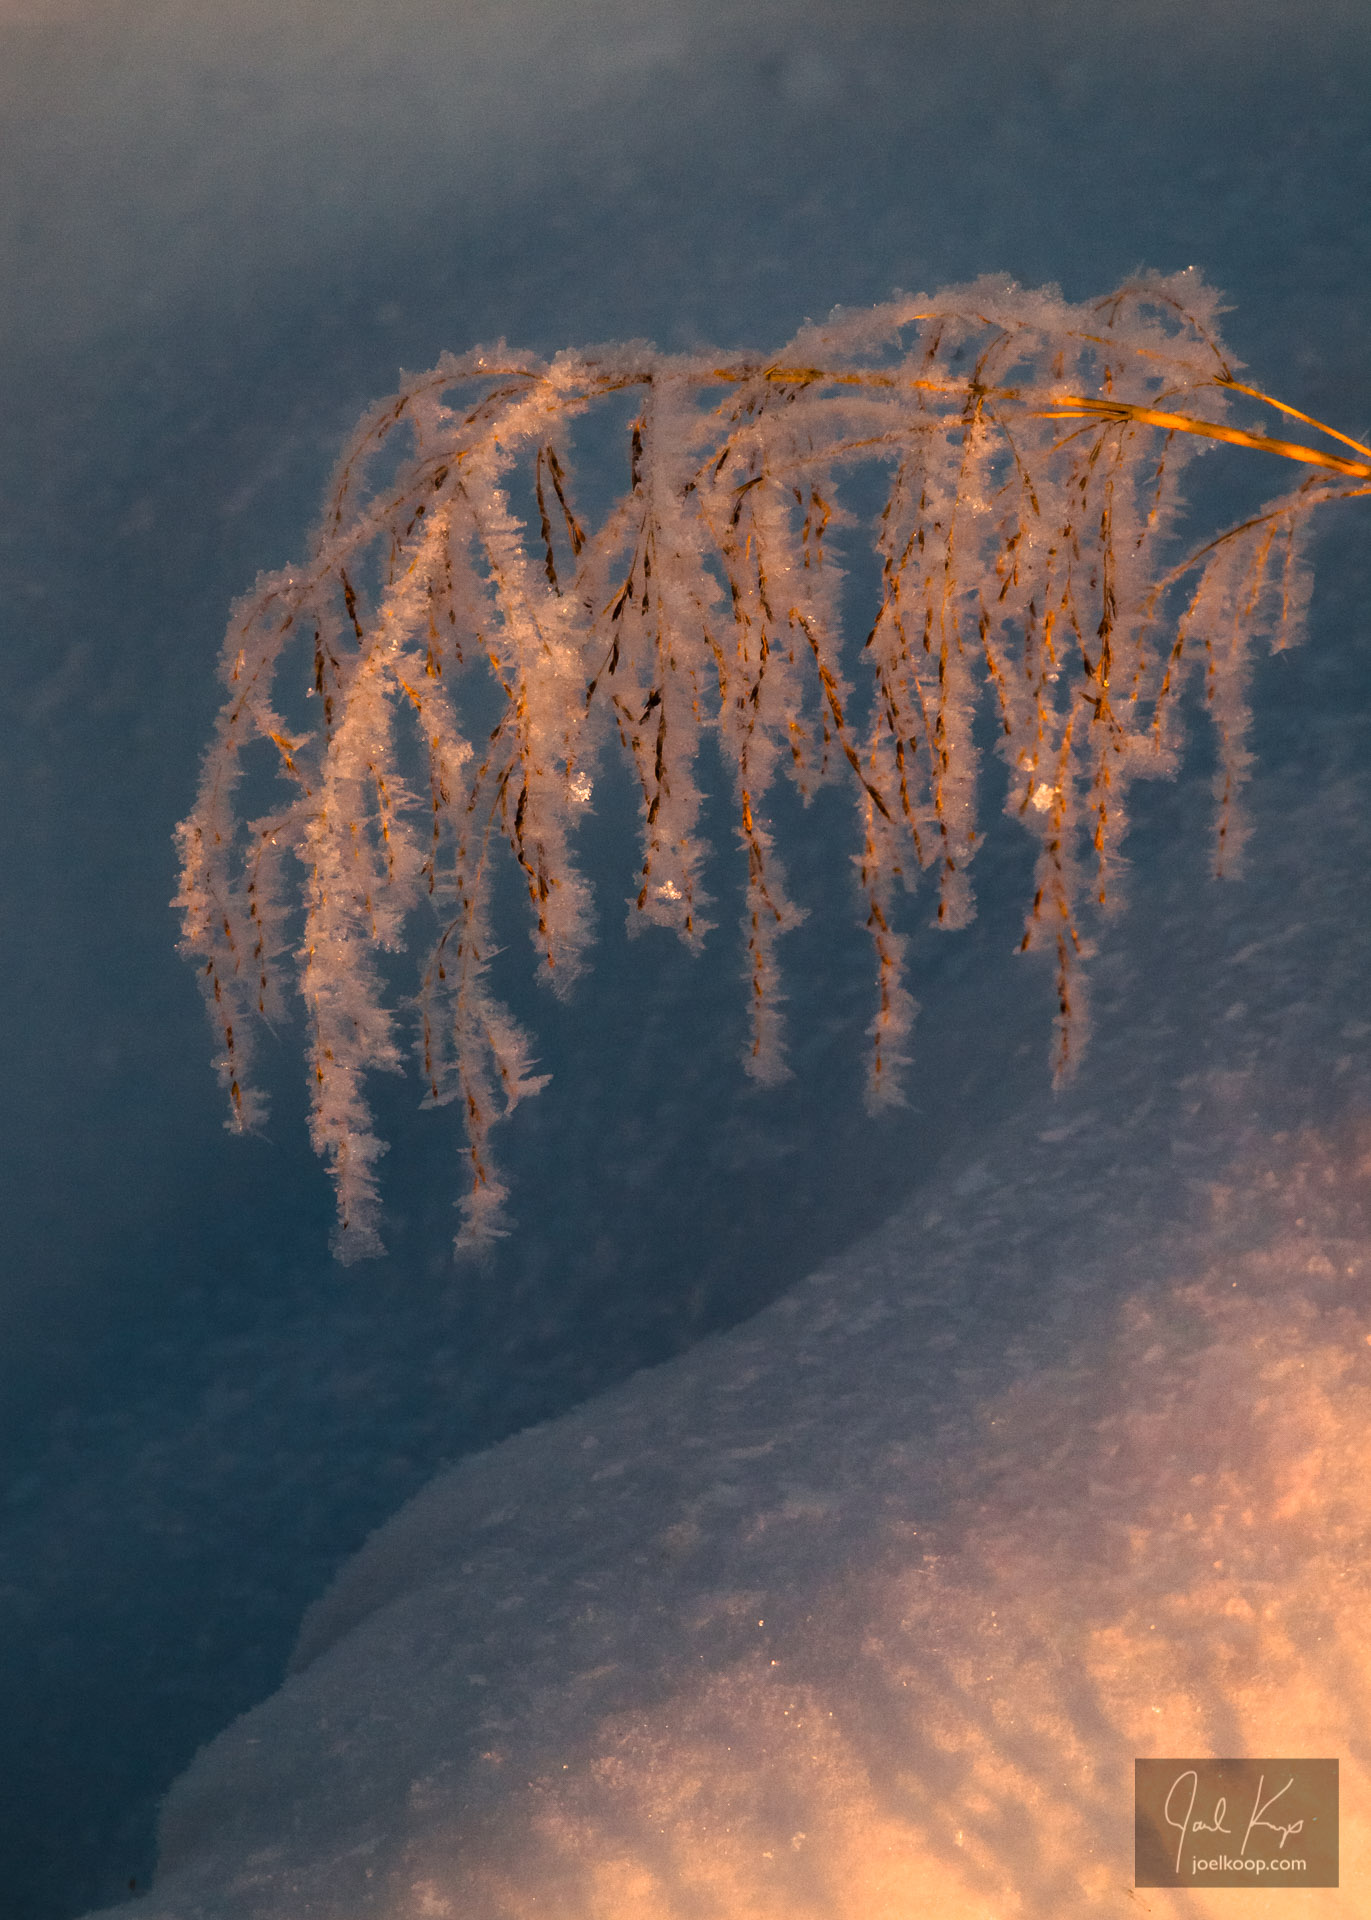 Evening Light on Frosted Grass